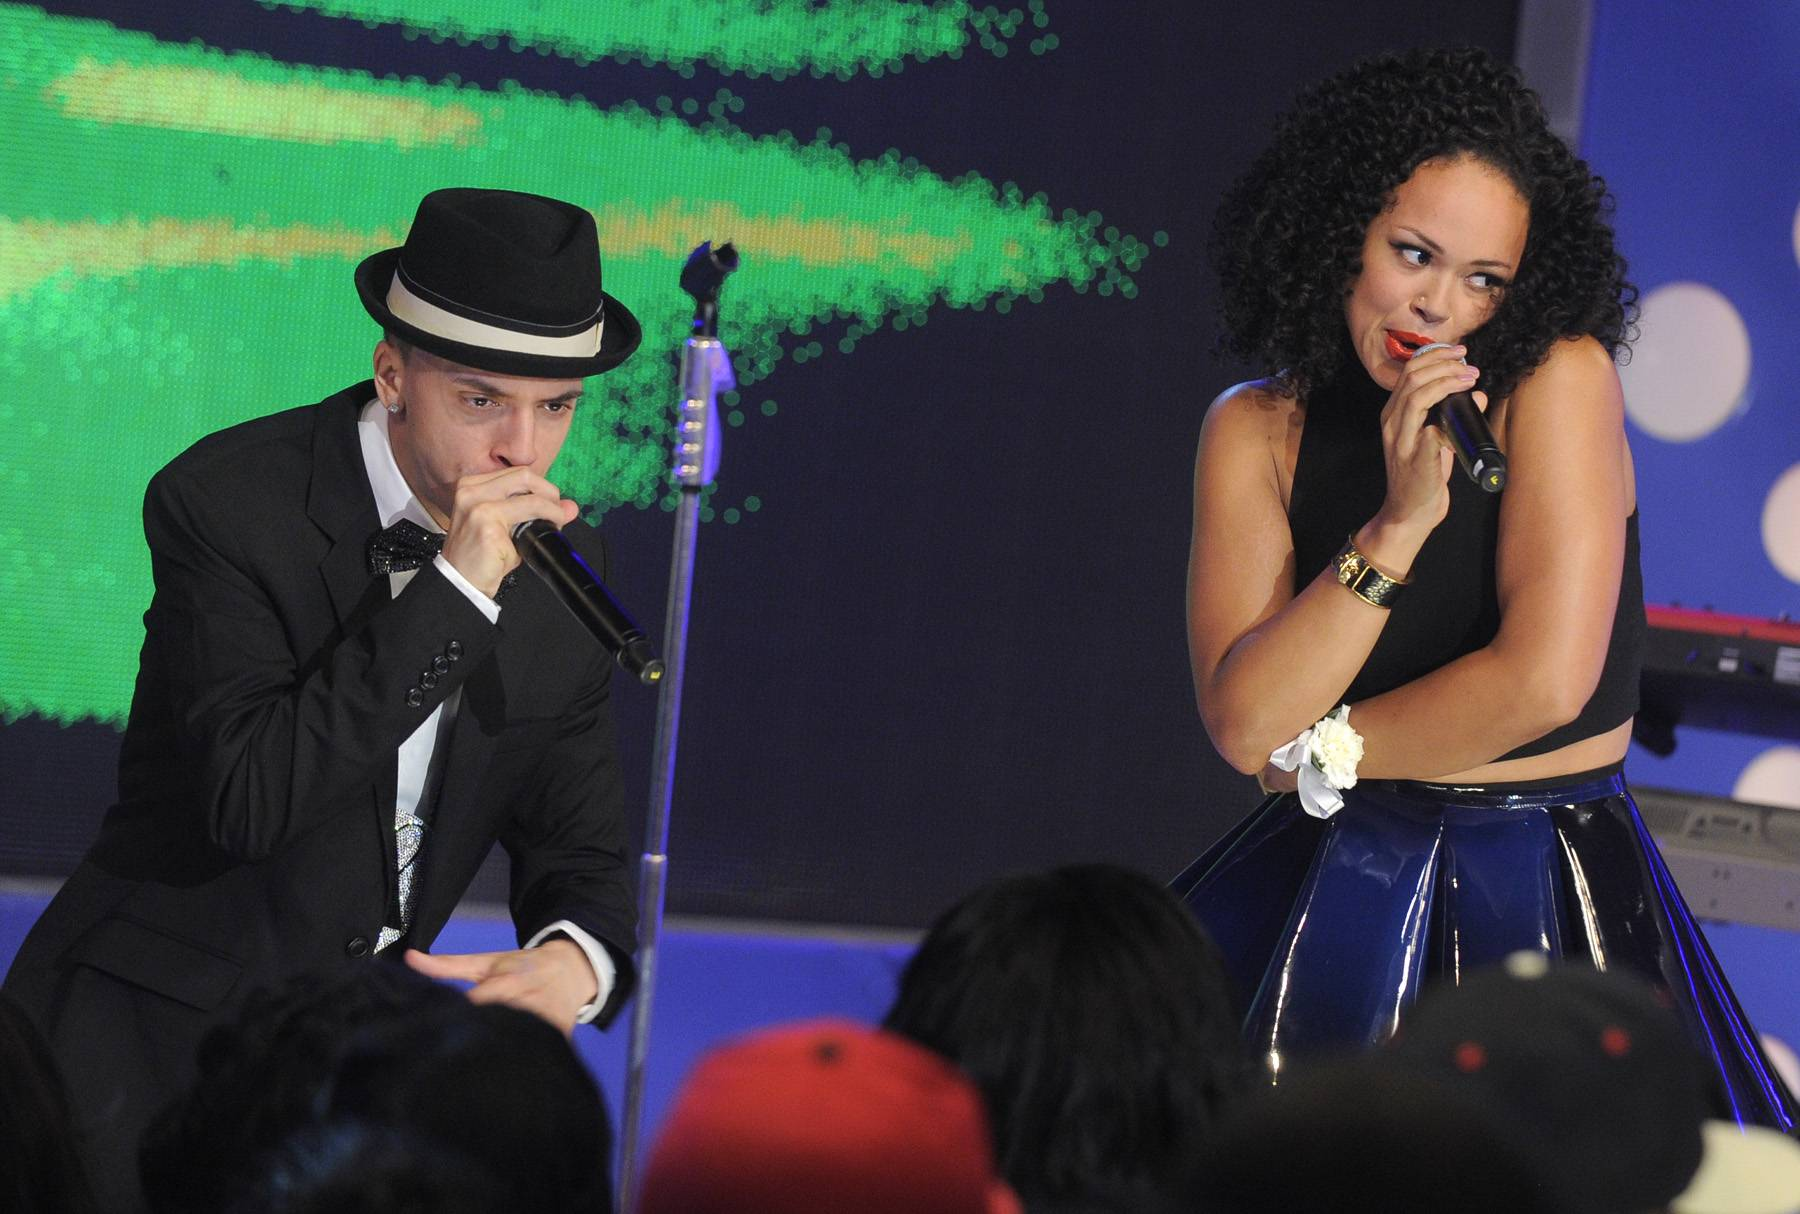 Now It's a Duet - Elle Varner performs at 106 & Park, May 25, 2012. (Photo: John Ricard / BET)